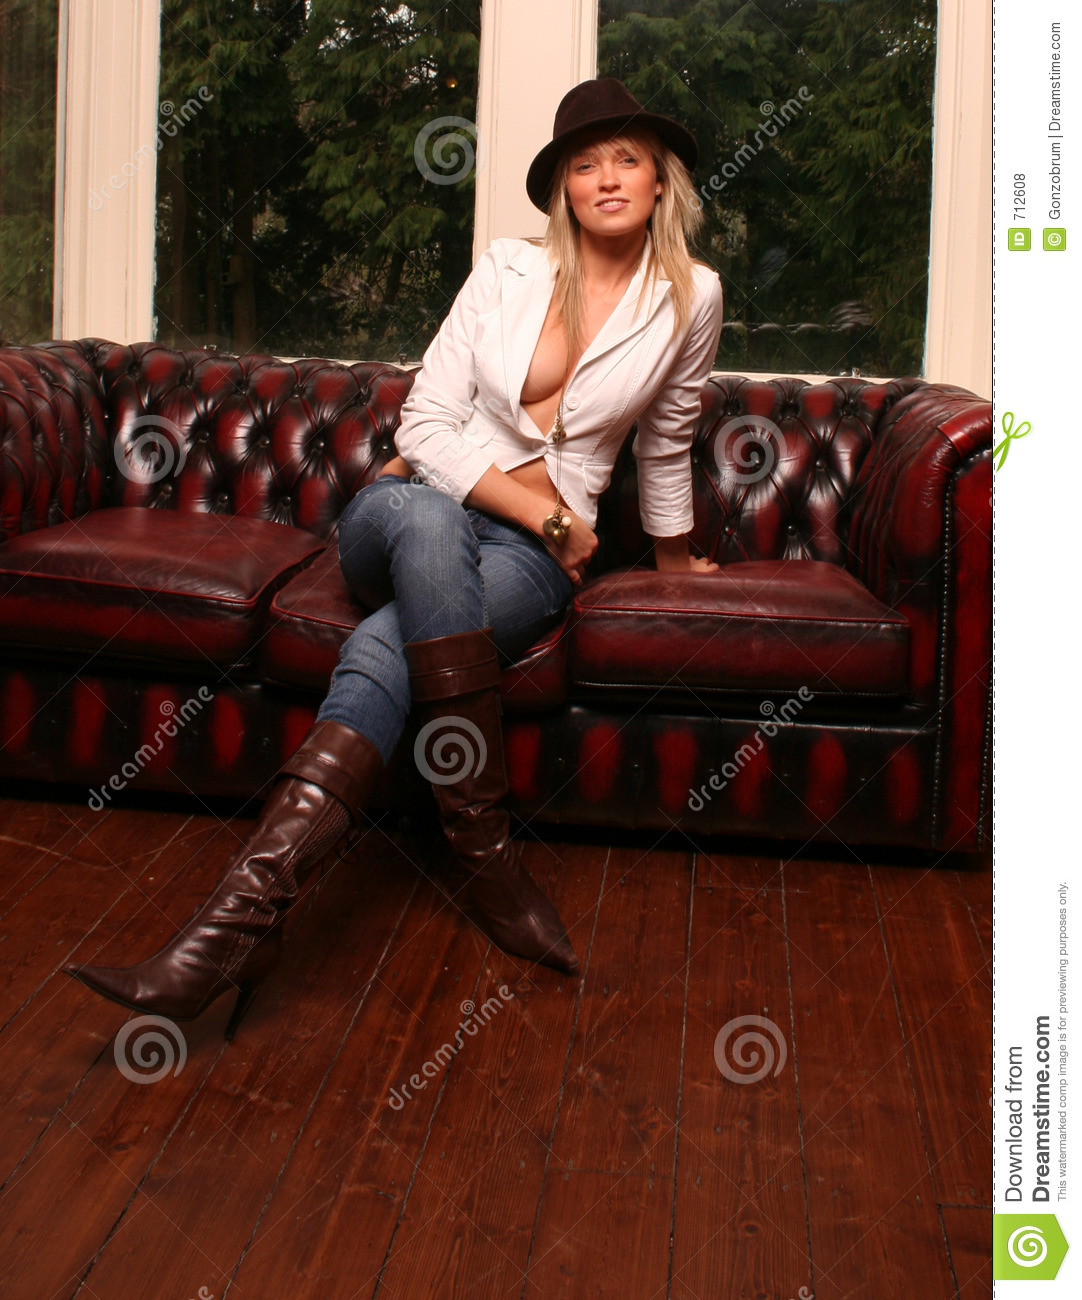 Leather Kirsty Royalty Free Stock Photos - Image: 712608